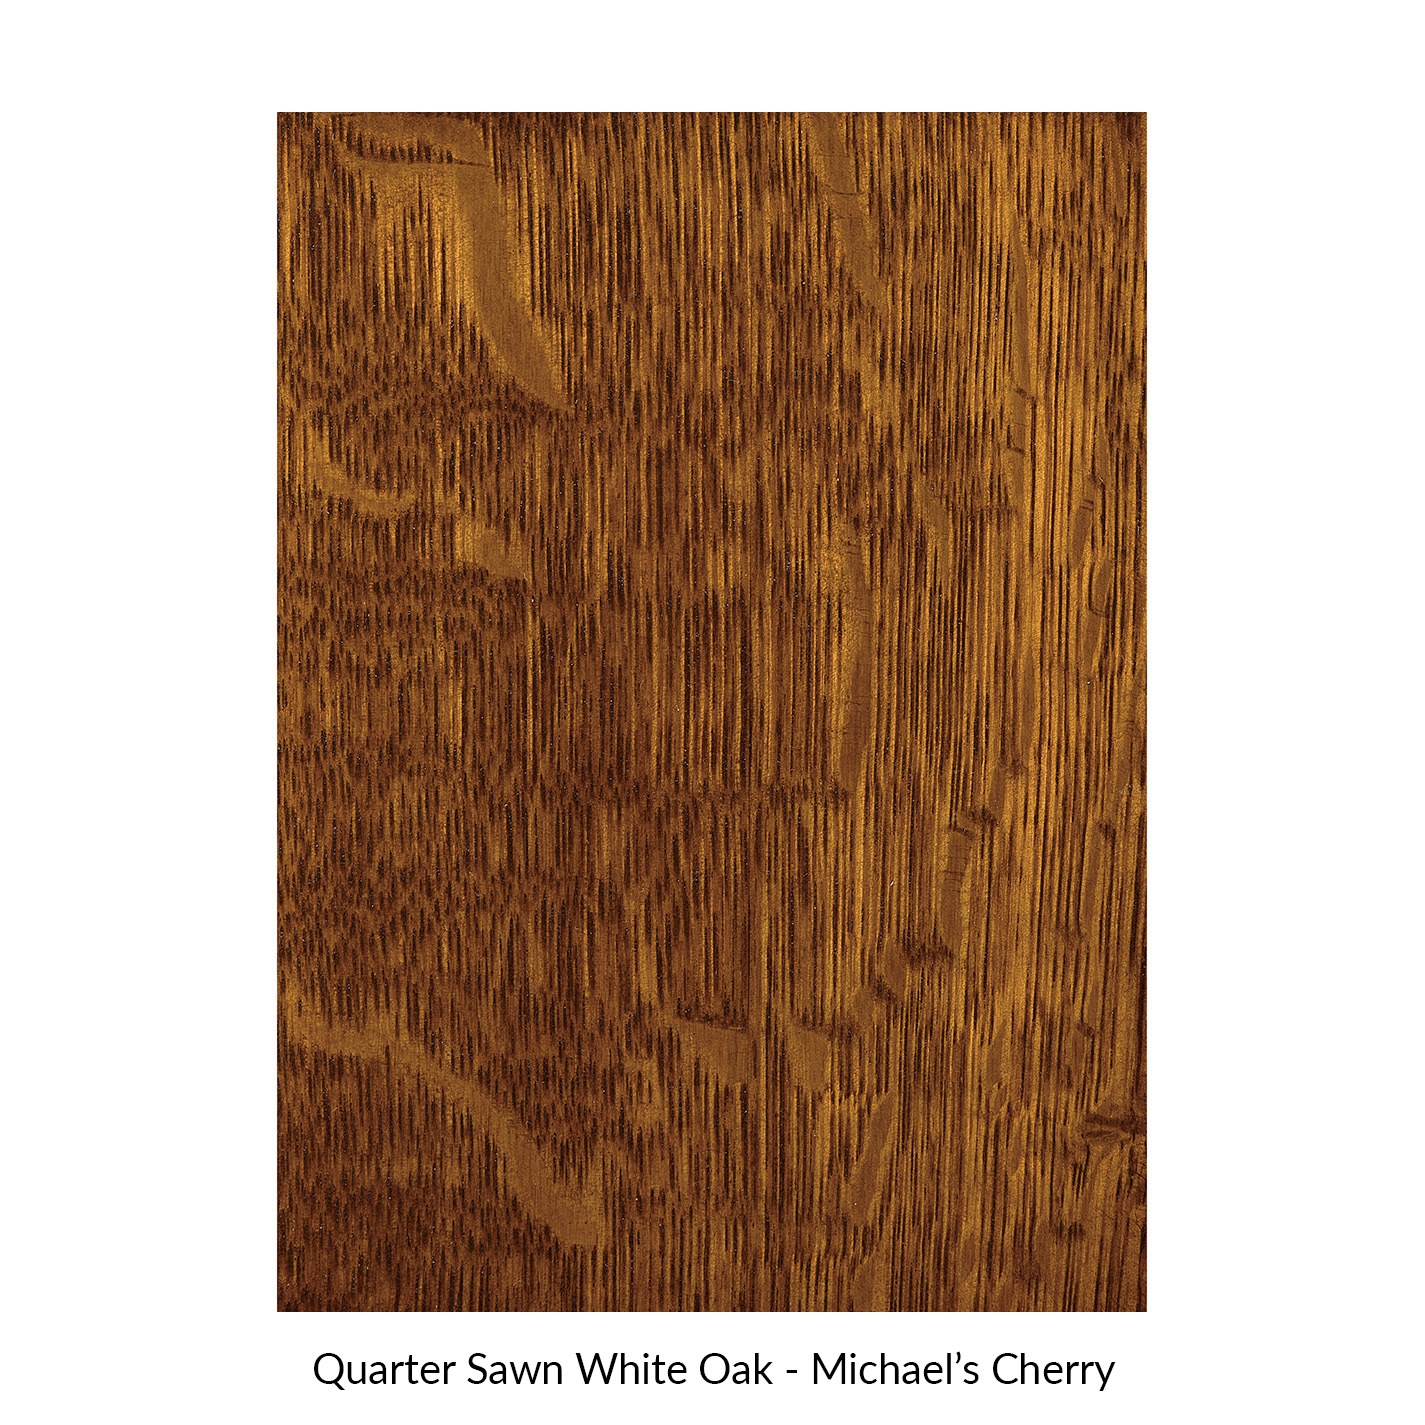 spectrum-quarter-sawn-white-oak-michaels-cherry.jpg